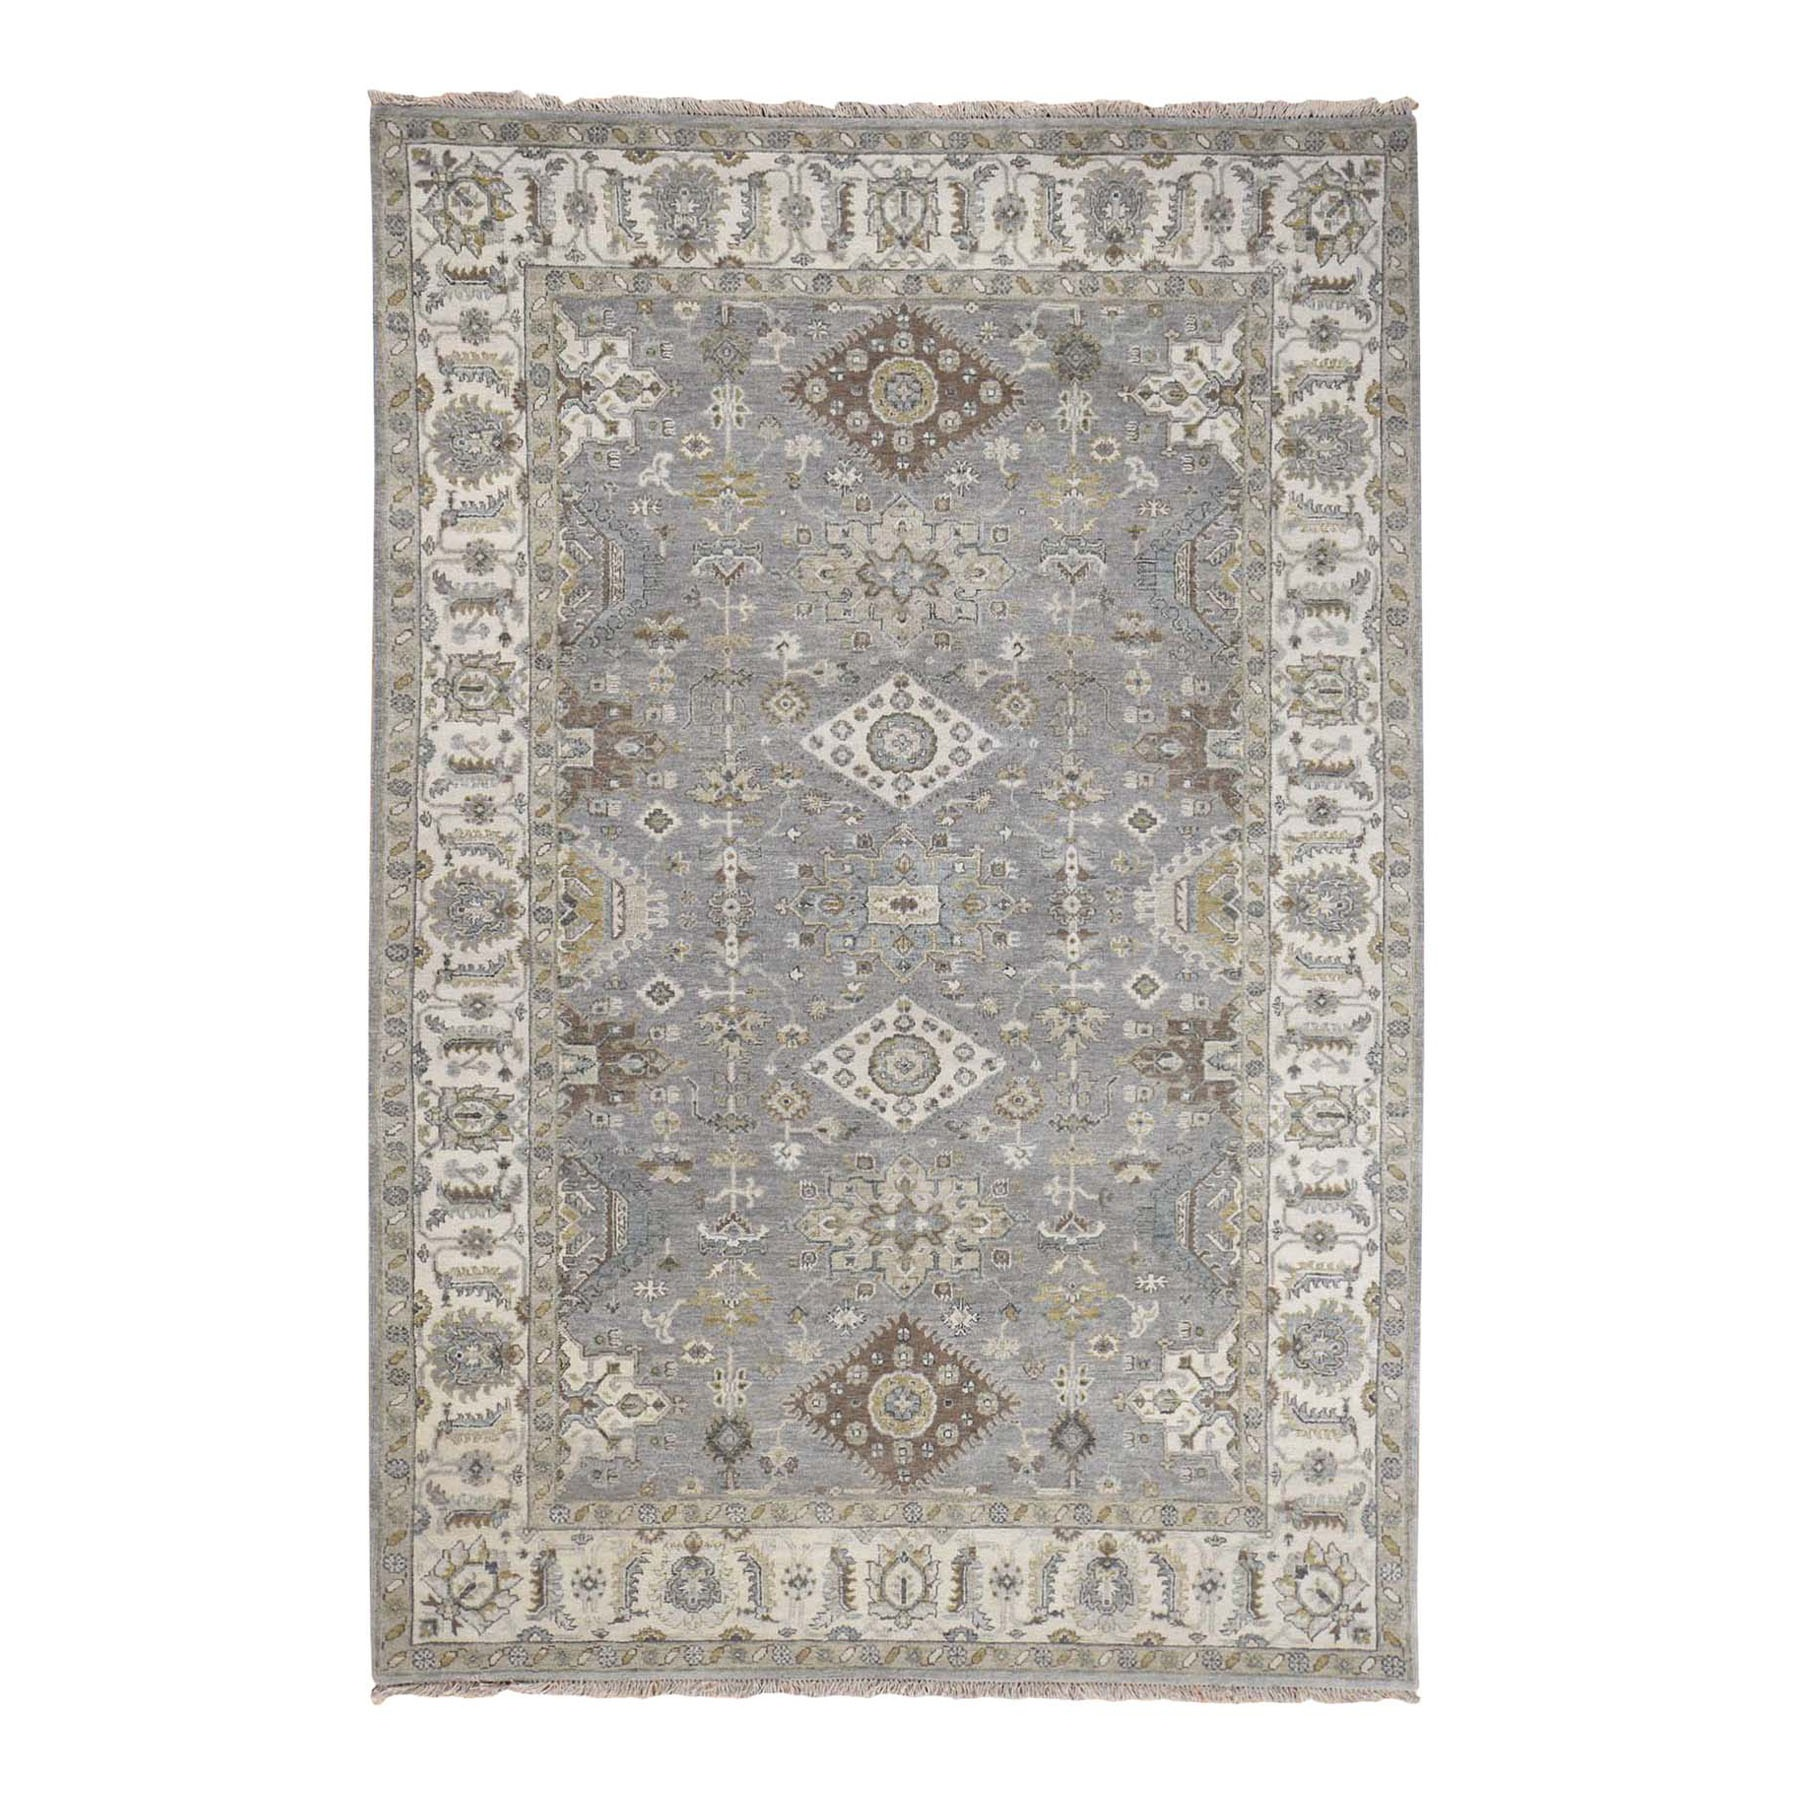 "6'3""x8'9"" Gray Karajeh Design Pure Wool Hand Knotted Oriental Rug"